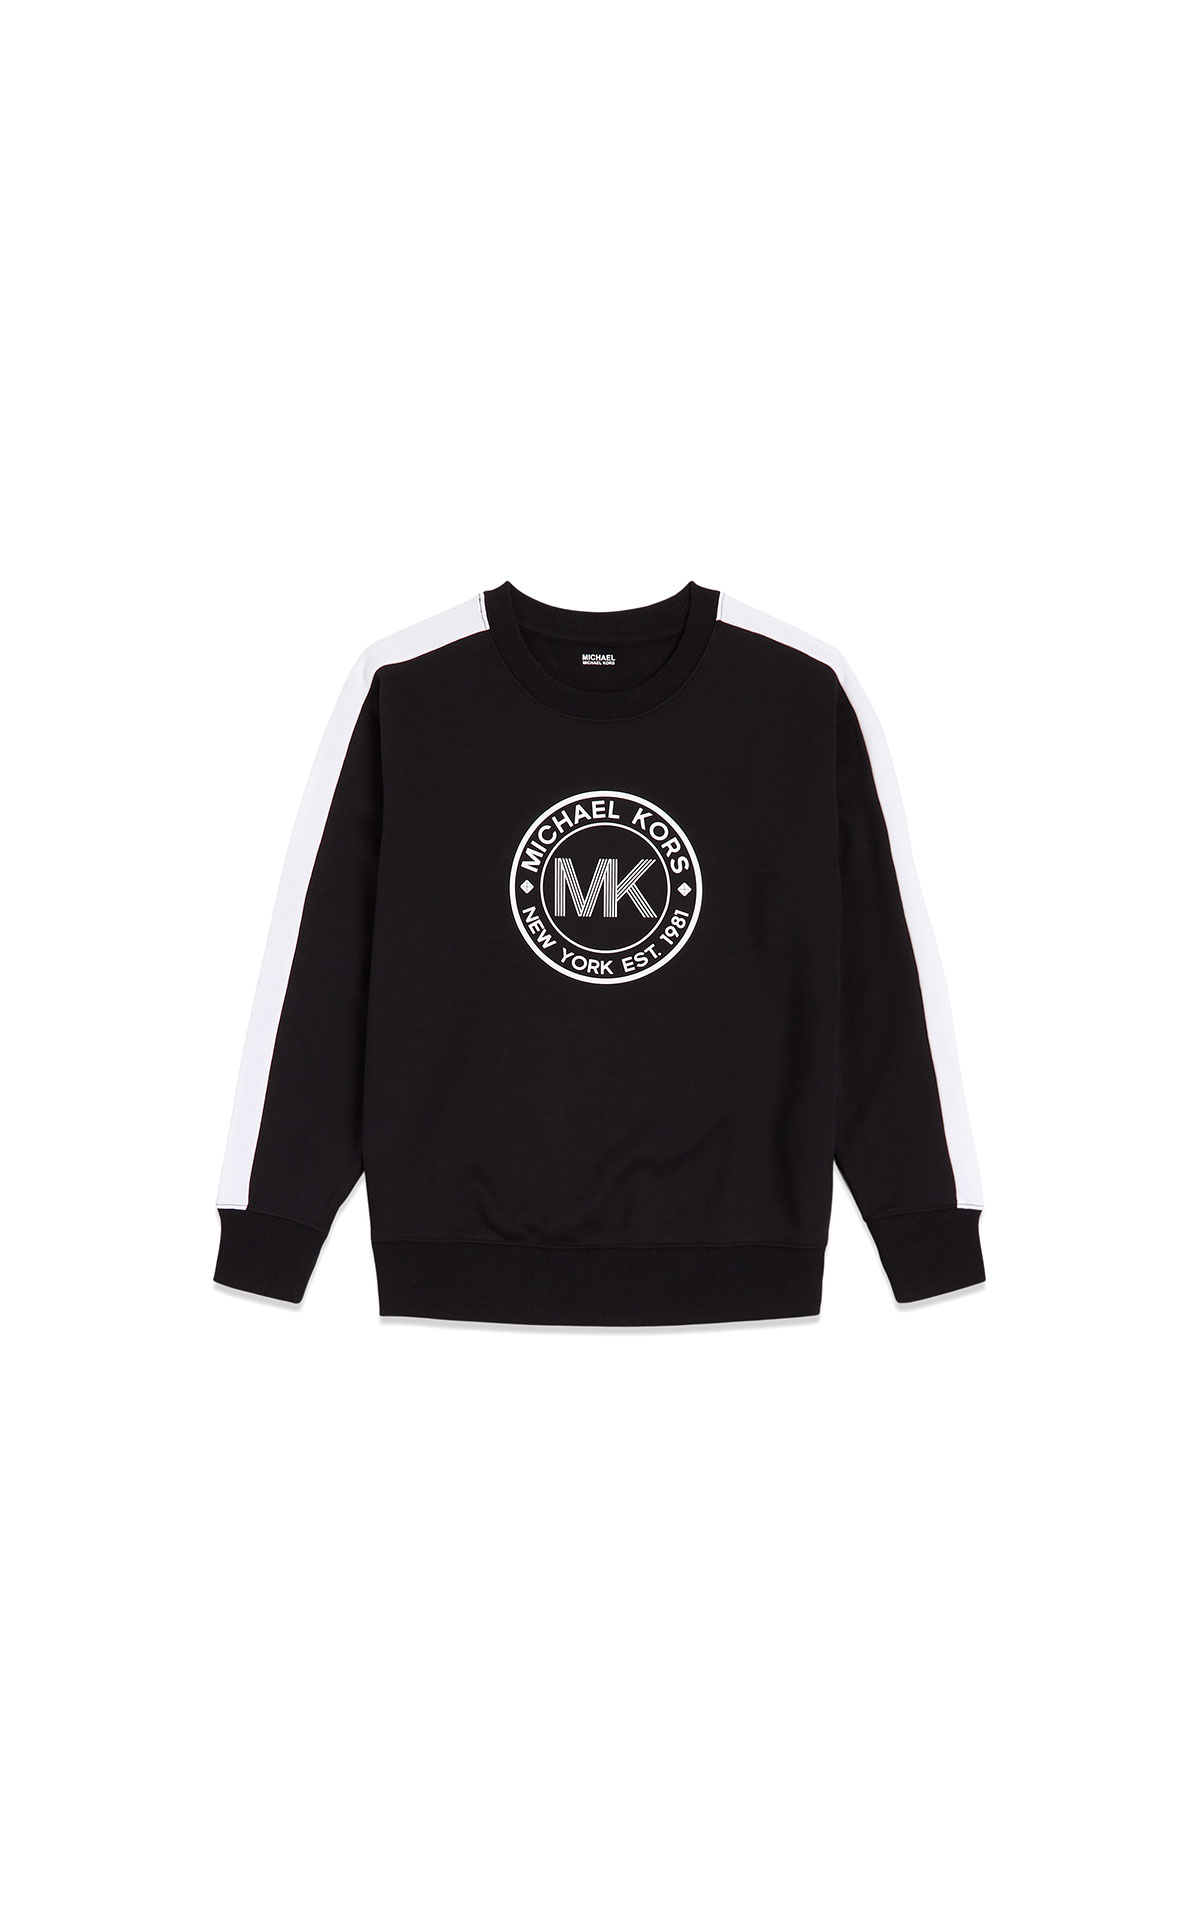 Michael Kors fulton logo sweatshirt at The Bicester Village Shopping Collection